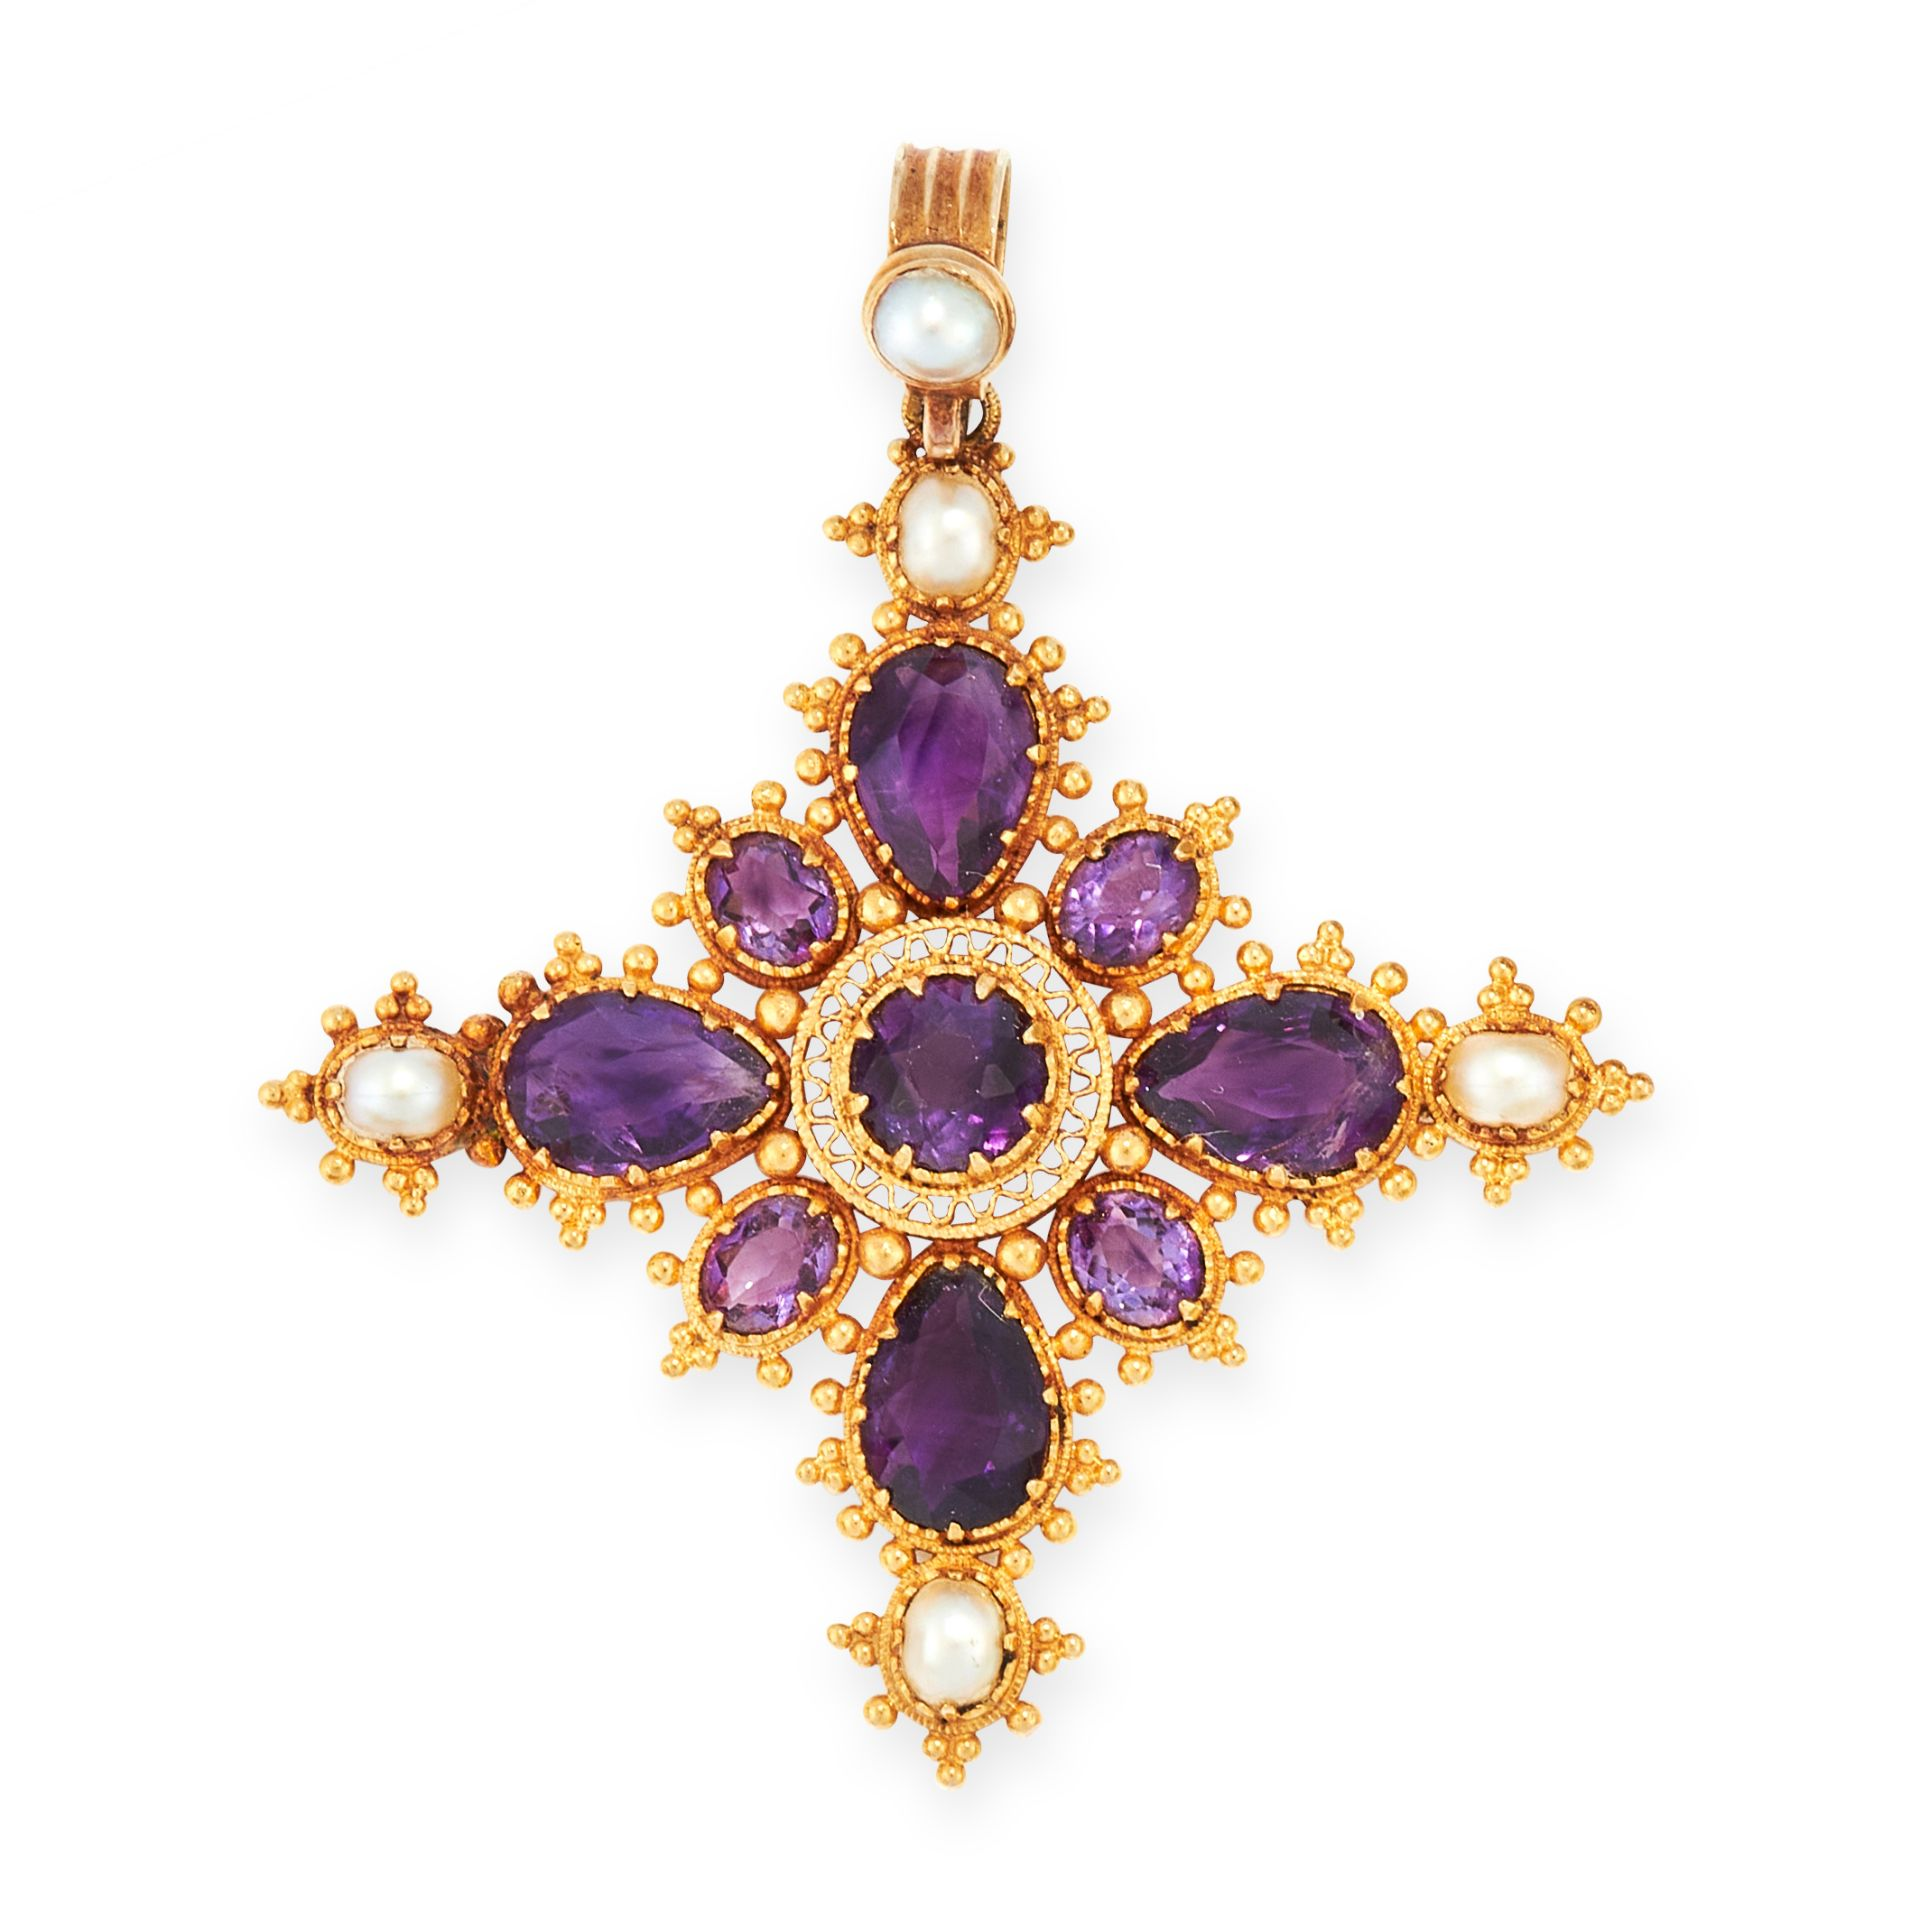 AN ANTIQUE AMETHYST AND PEARL CROSS PENDANT, 19TH CENTURY in high carat yellow gold, set with round,